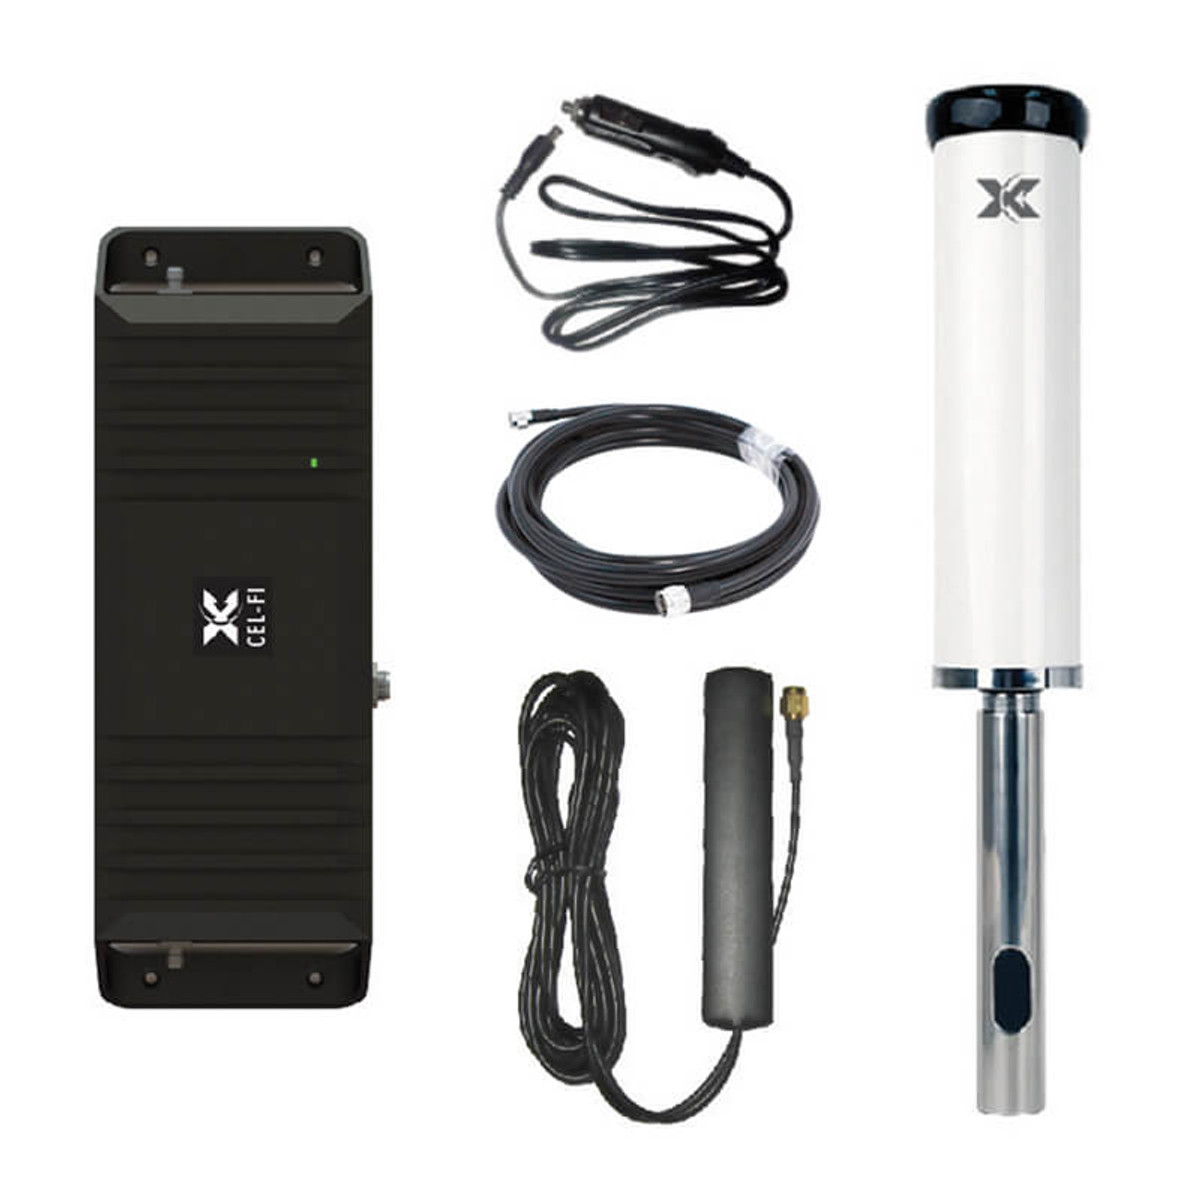 Cel-Fi GO+ Vehicle Smart Signal Booster with Marine Antenna Kit